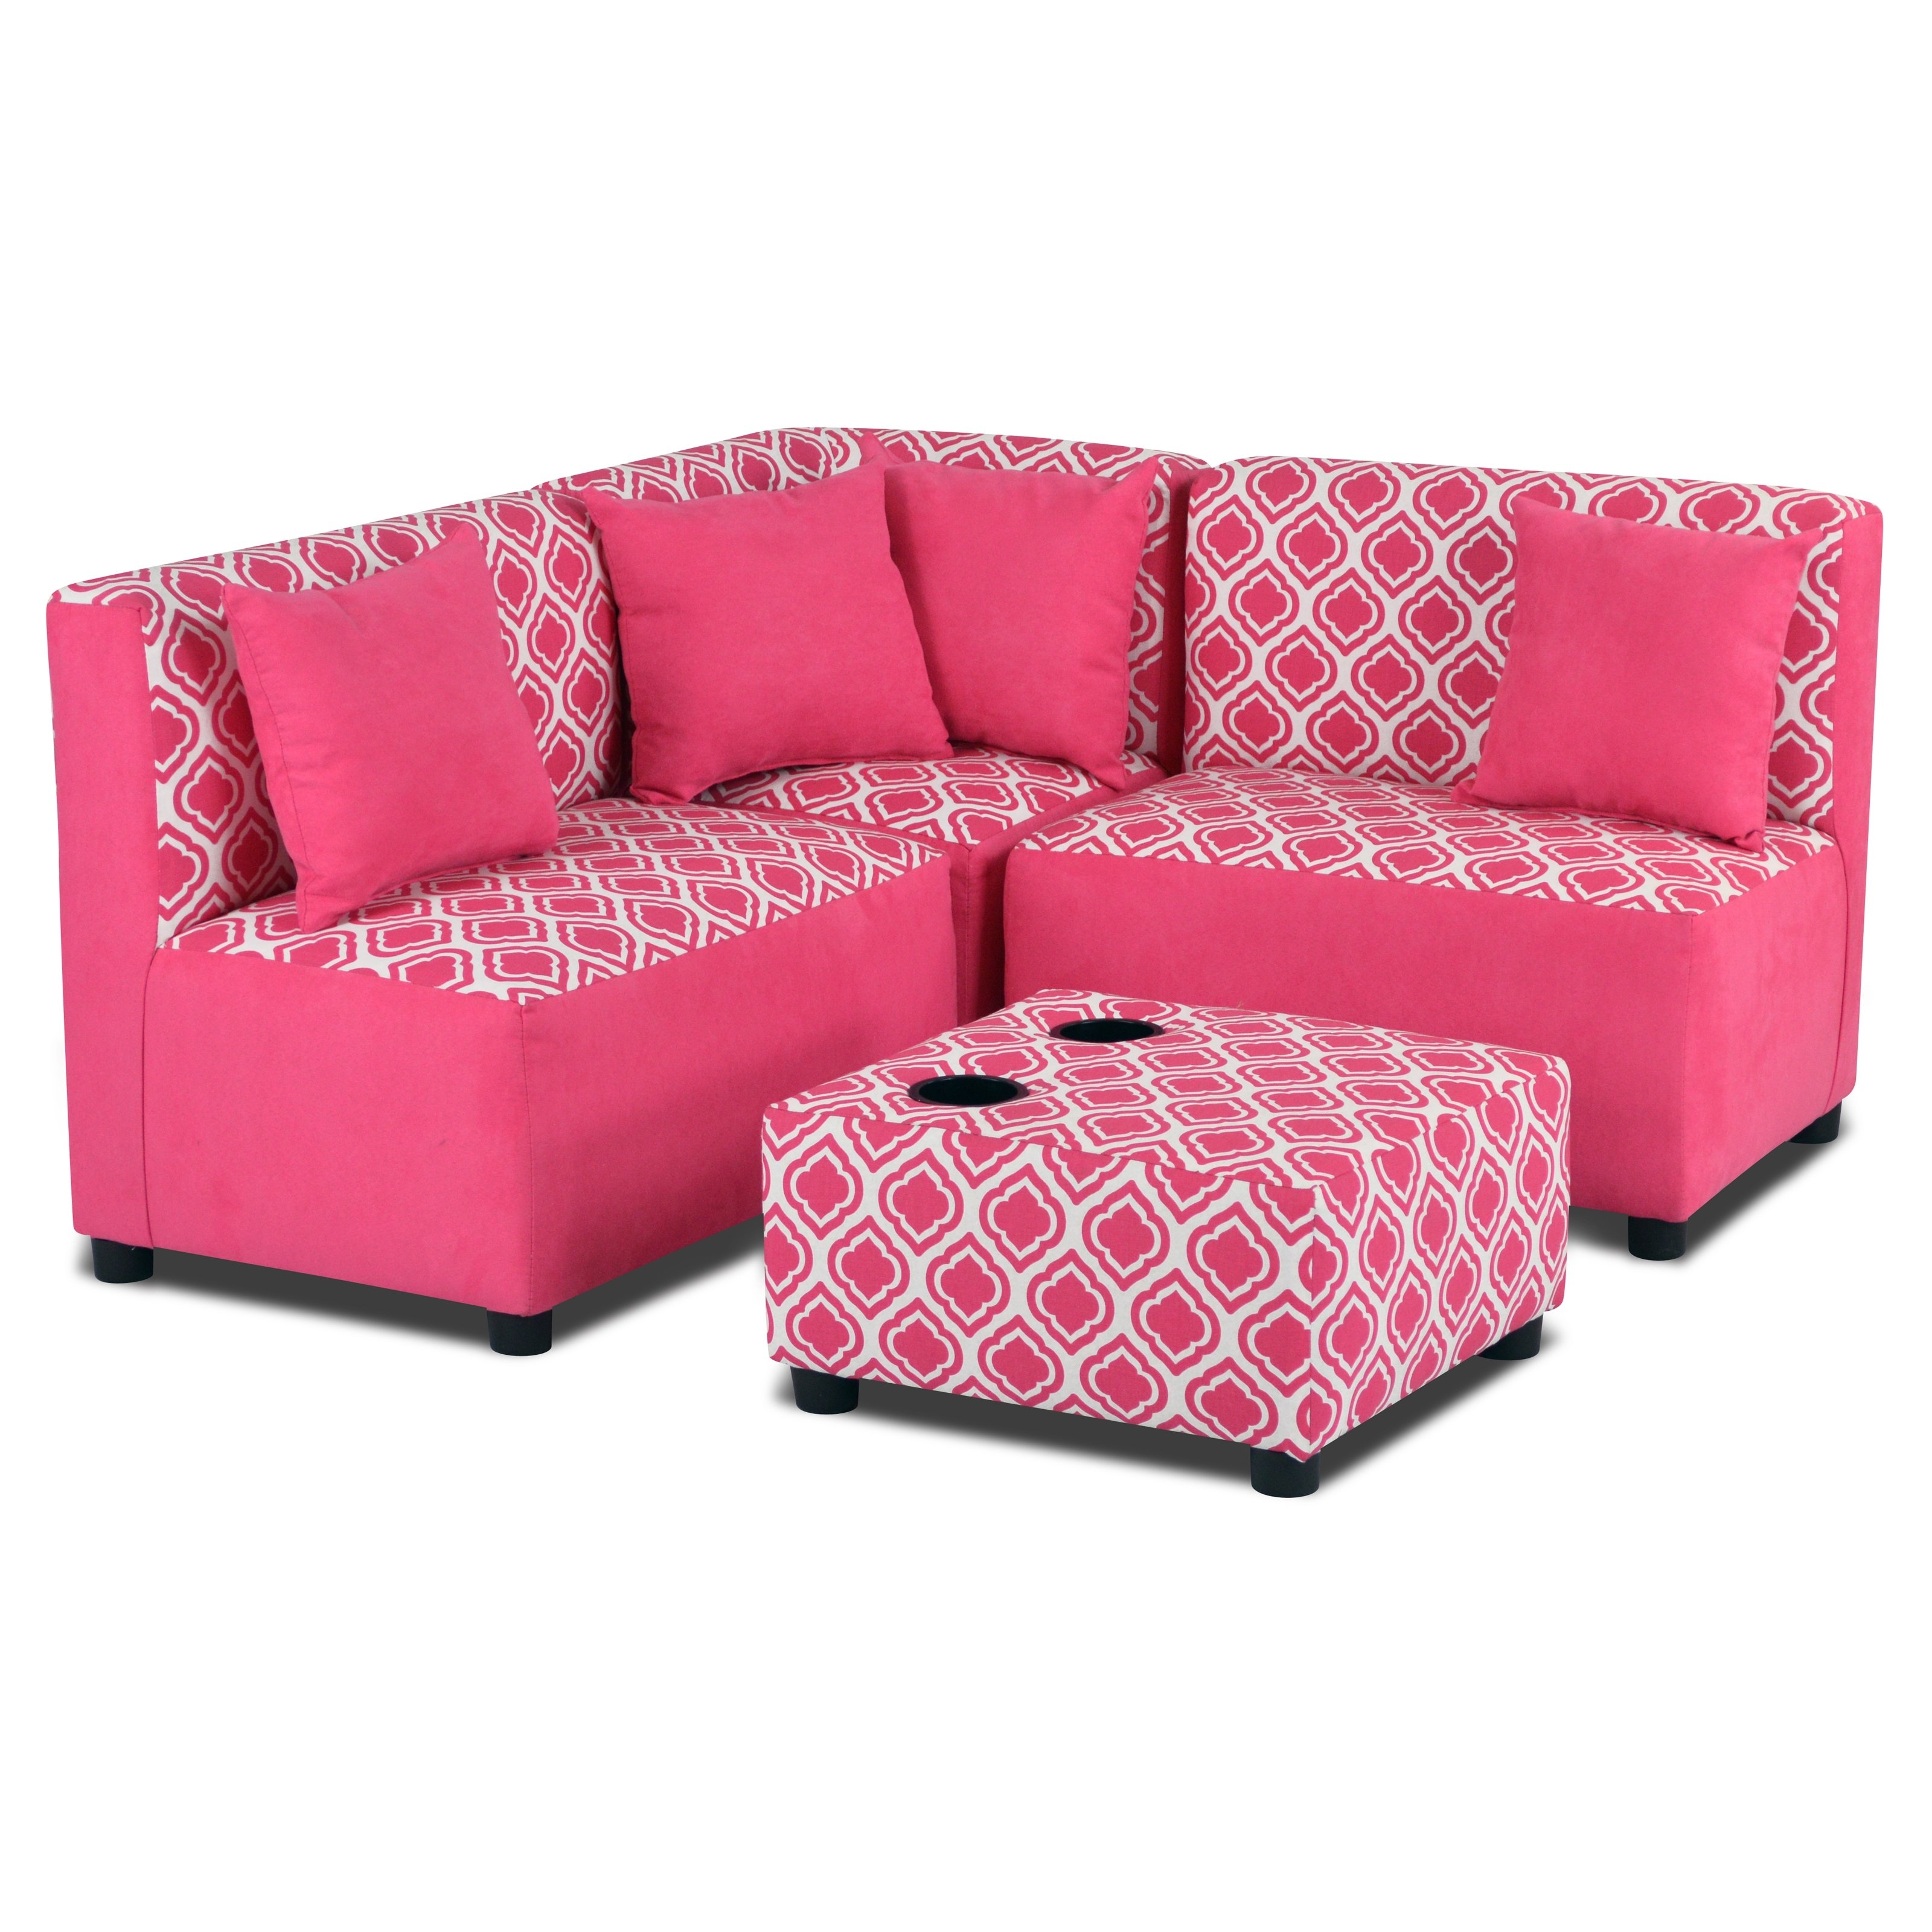 Childrens Sofas – Home And Textiles Pertaining To Childrens Sofas (View 4 of 10)